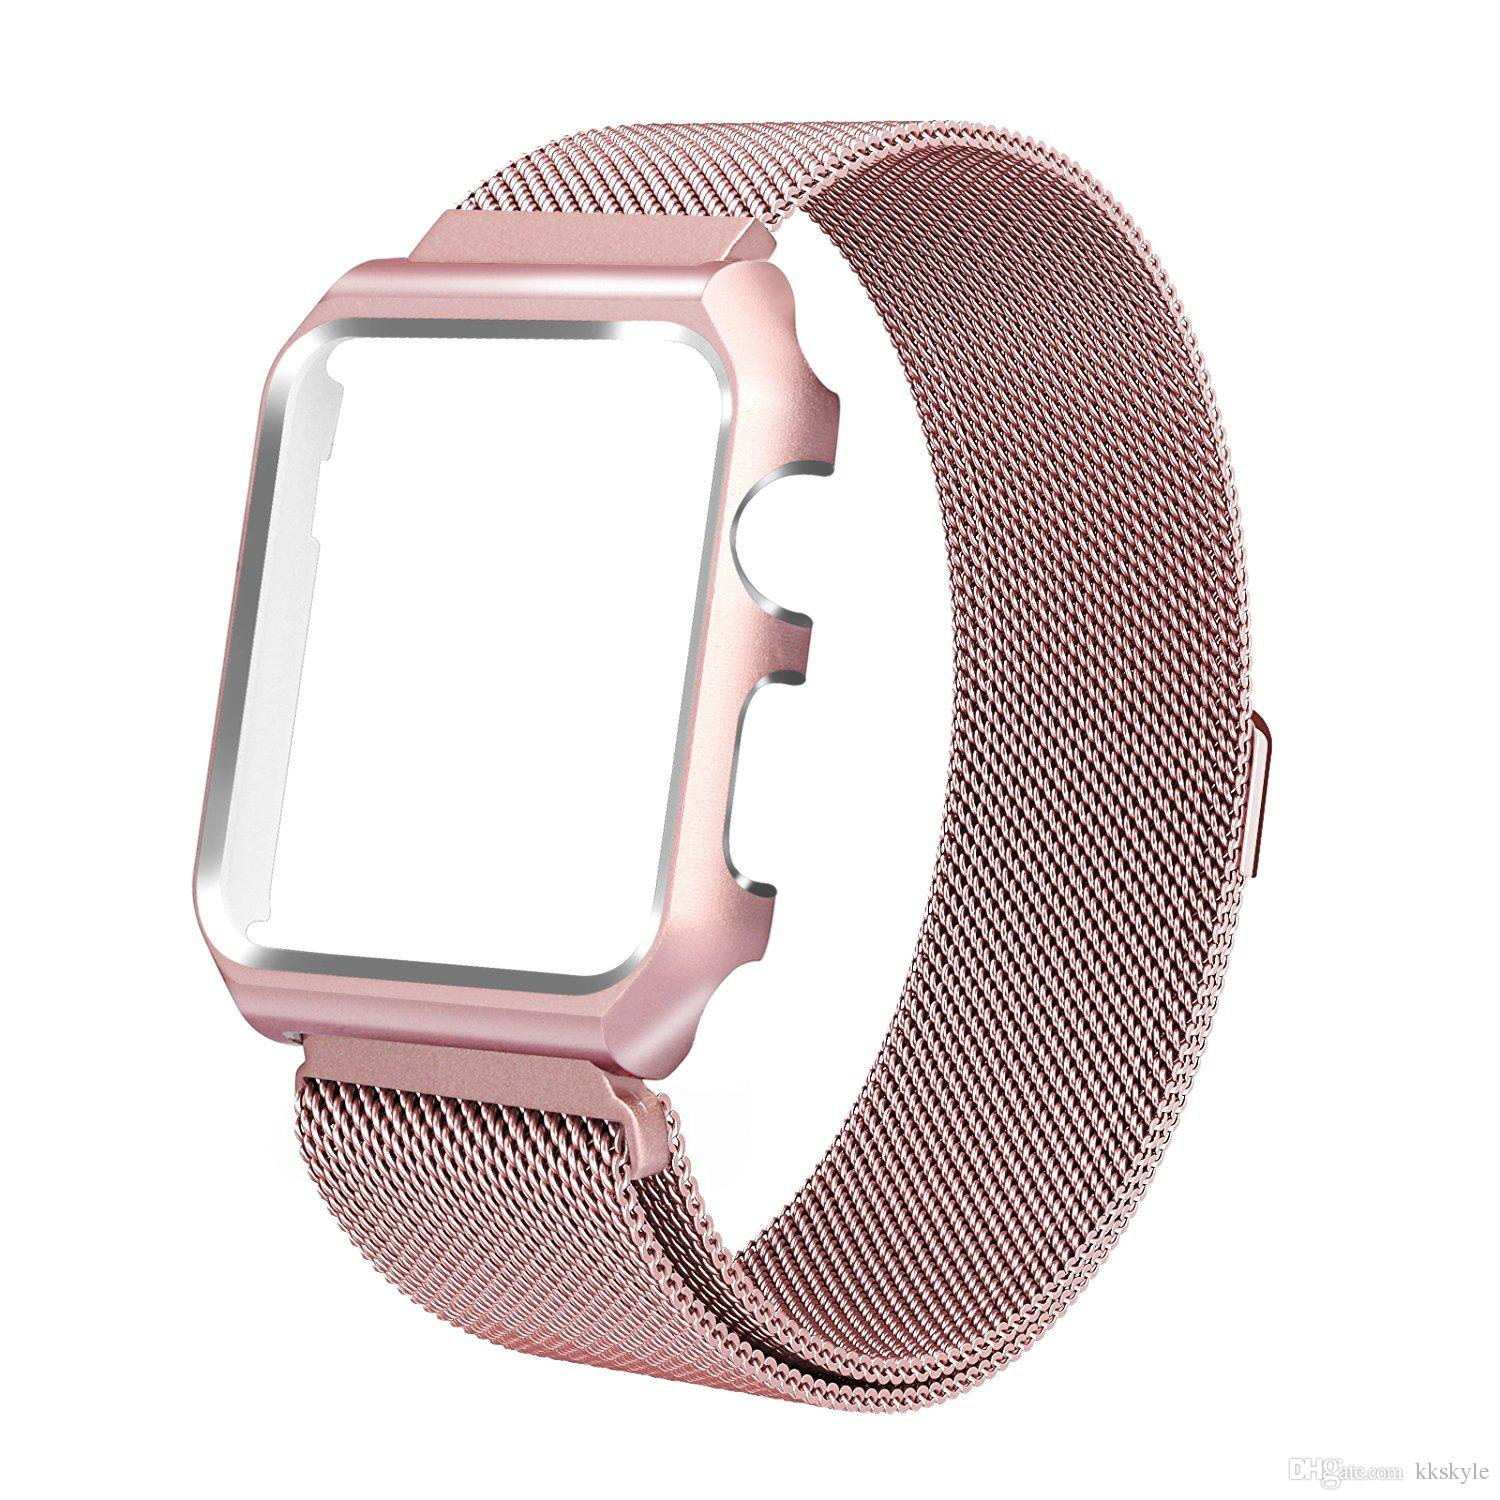 For New 2019 Apple Watch Band 38mm 40mm 42mm 44mm,Milanese Loop Stainless Steel Magnetic Band with Case for Apple Watch Series 4 3 Series 5